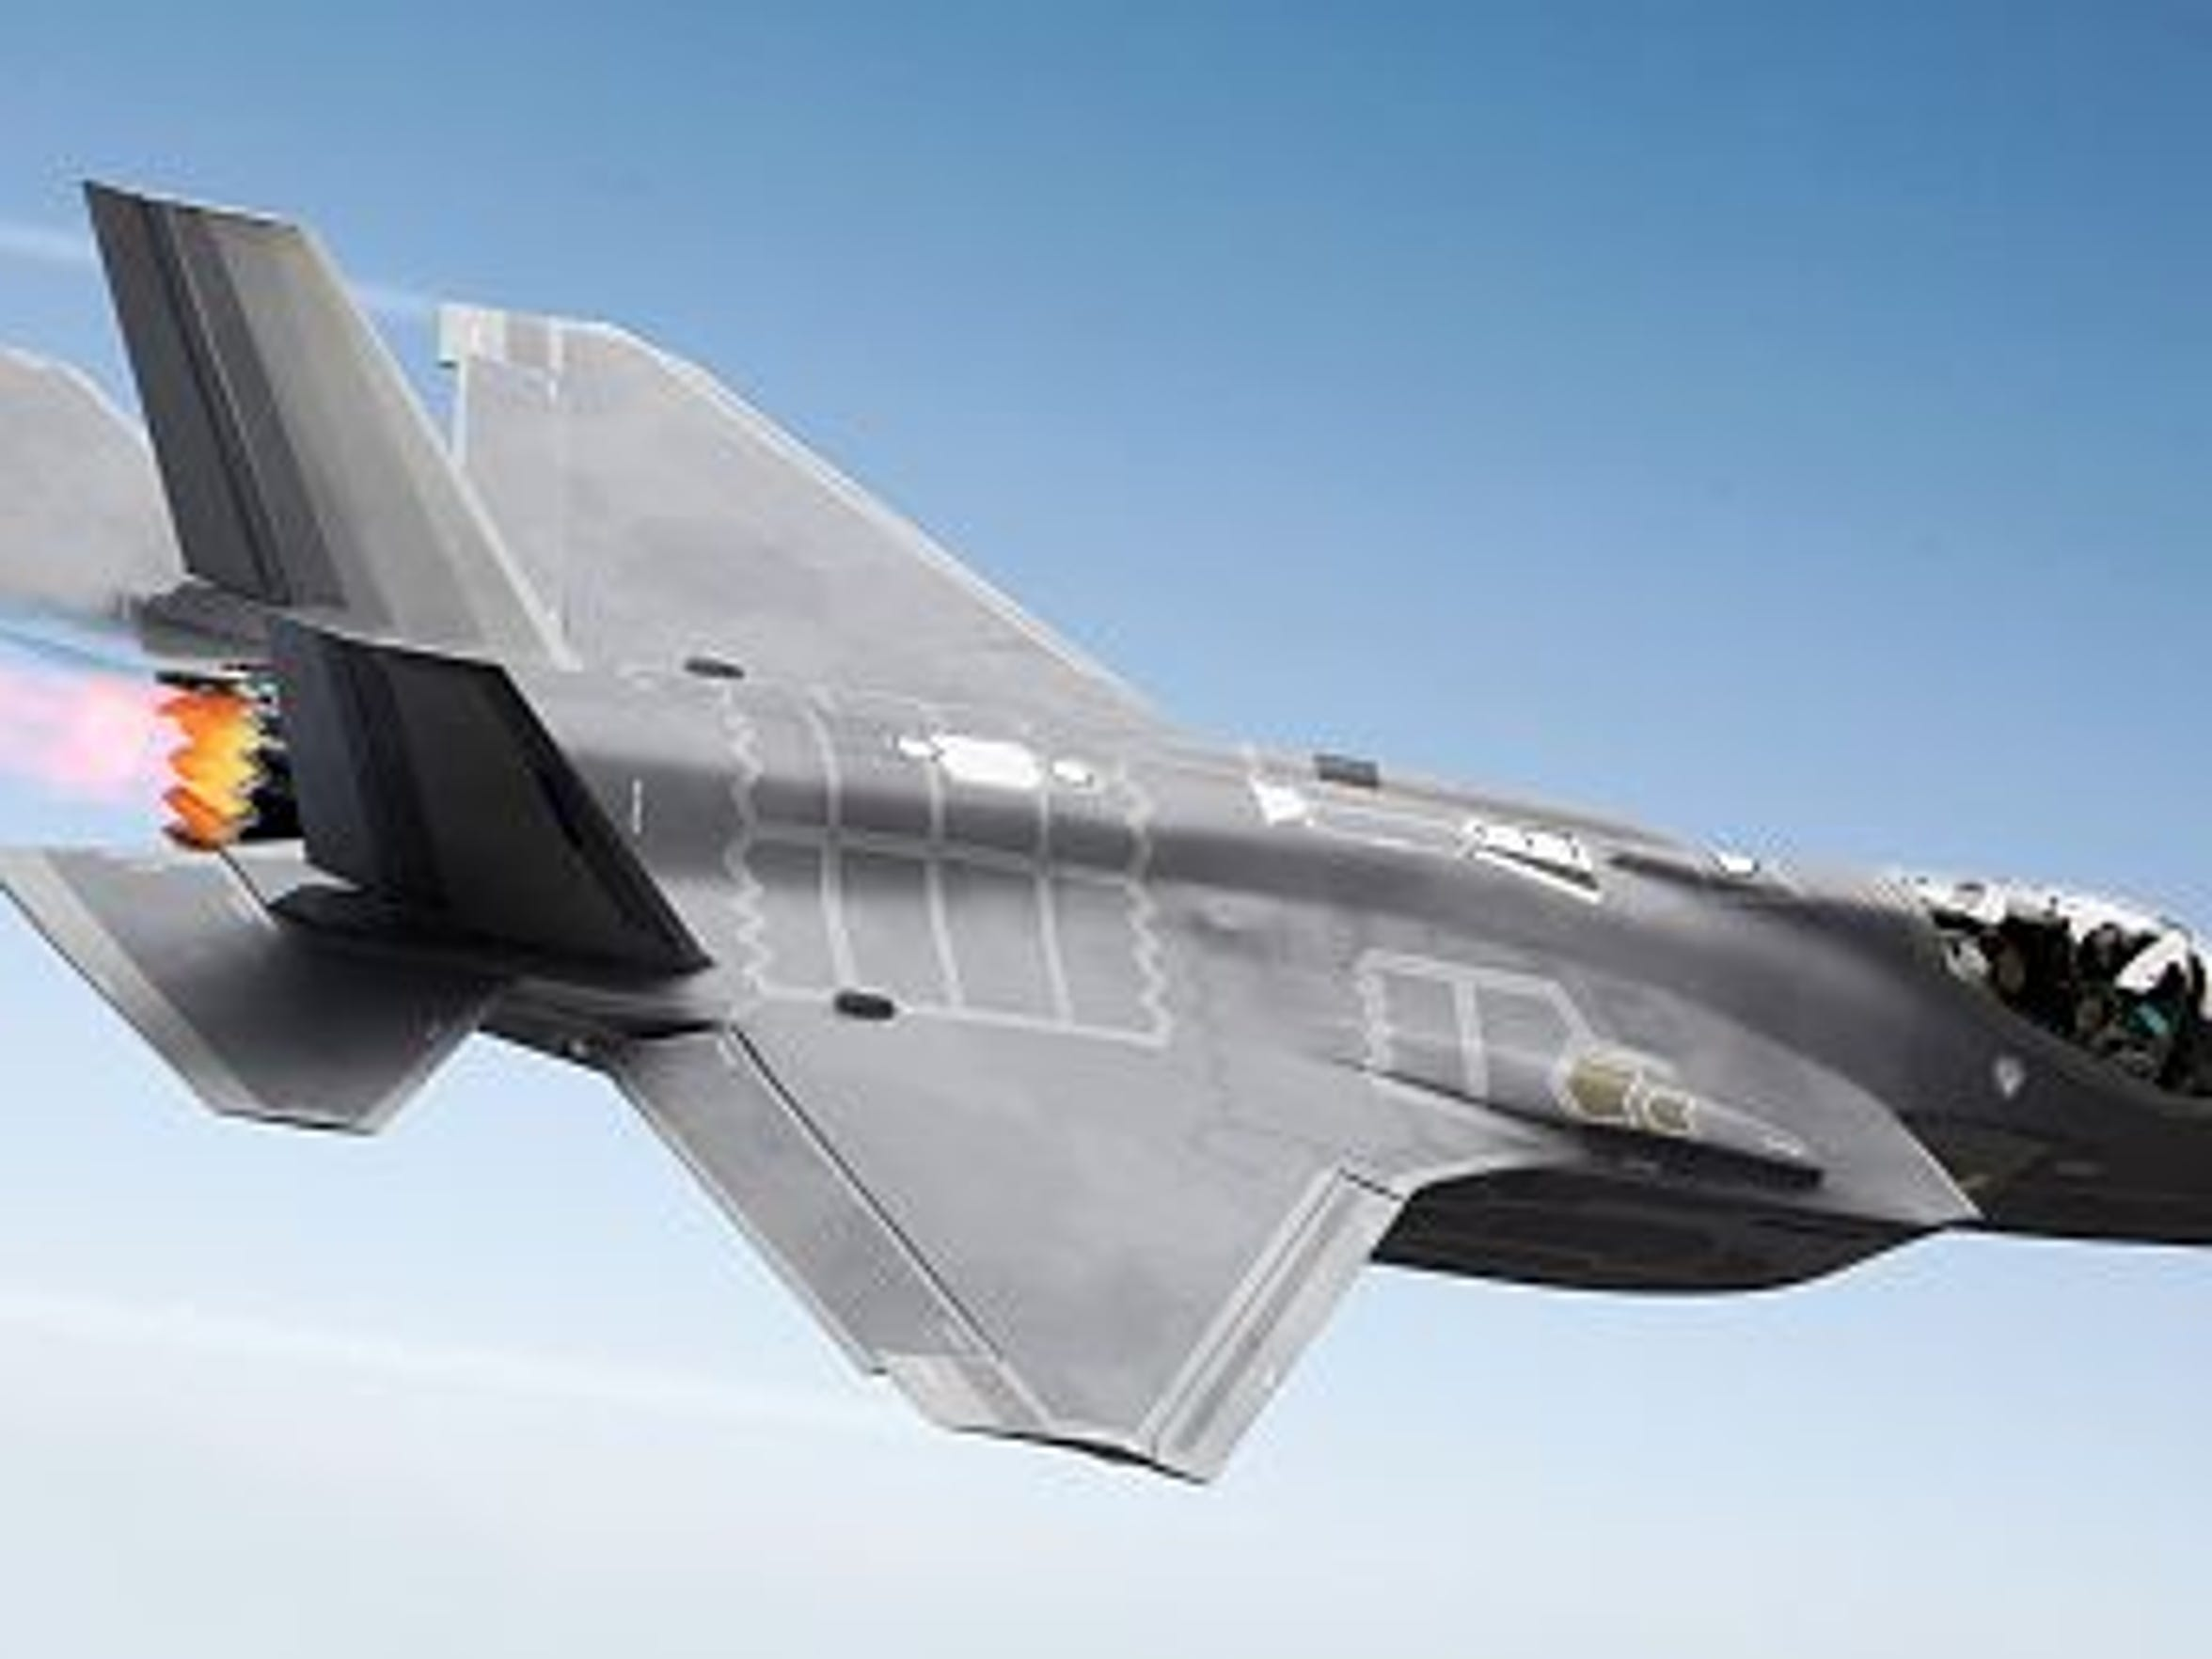 F35 Fighter jet at supersonic speeds.